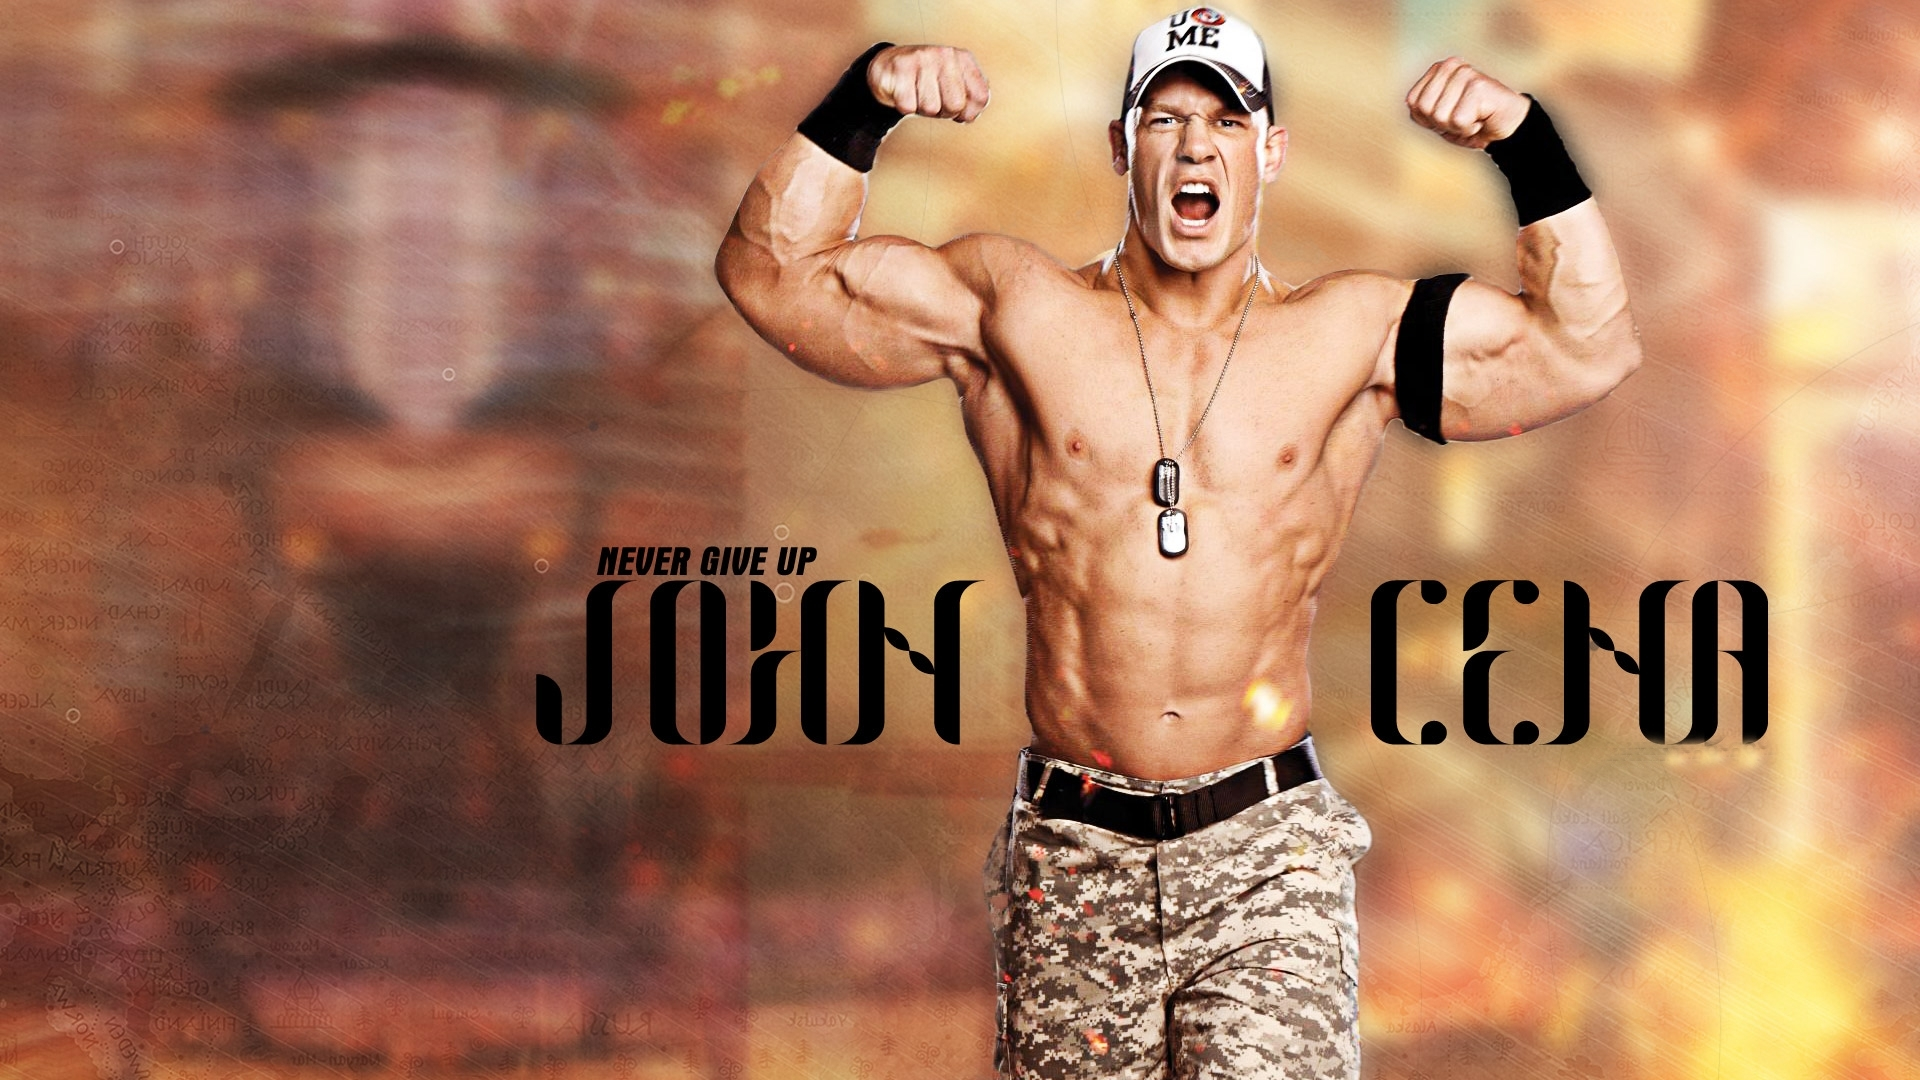 john cena never give up wallpaper desktop wallpaper | wallpaperlepi